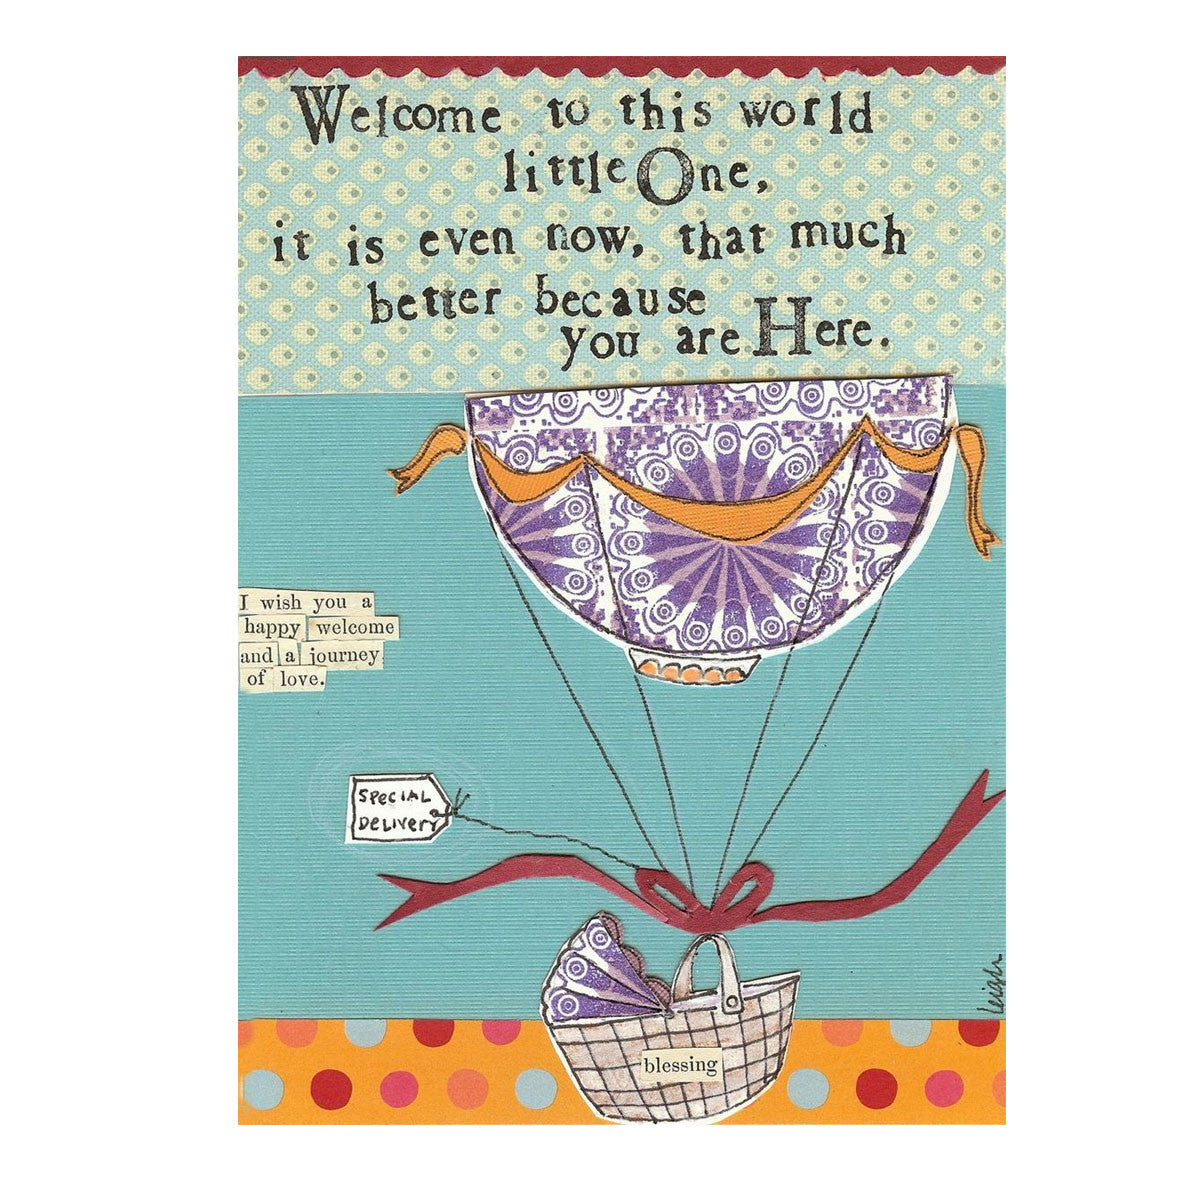 Welcome Little One New Baby Recycled Card Little Earth Nest Greeting & Note Cards at Little Earth Nest Eco Shop